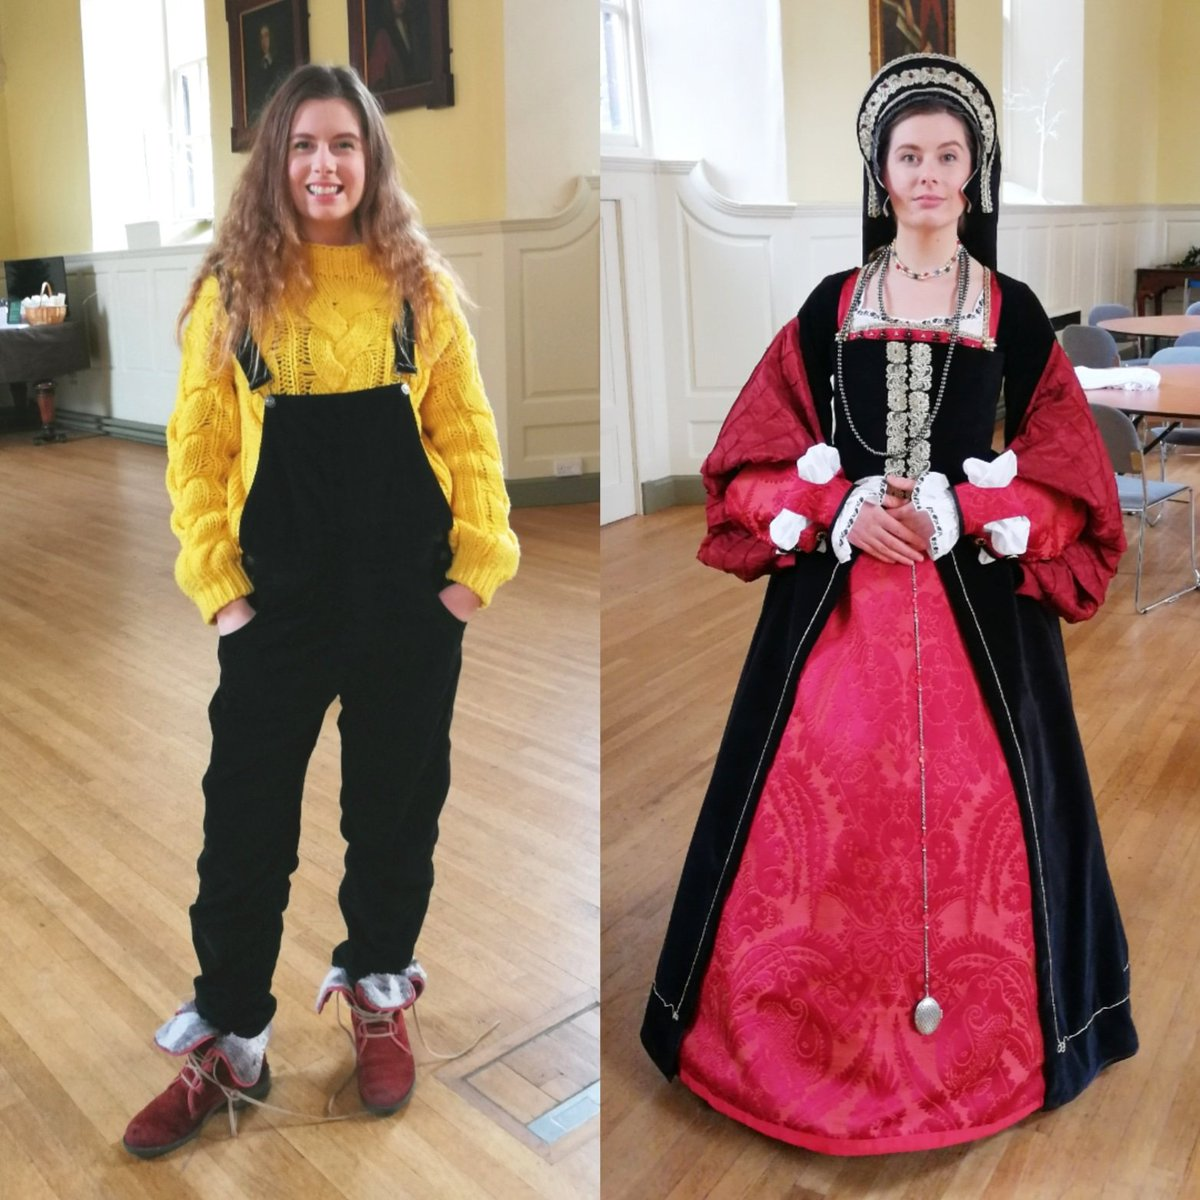 Had a fab day with @BuryStEdBeyond and the volunteers from #theguildhallburystedmunds who made the beautiful #MaryTudor #queen of France costume by hand from scratch. Exciting things to come. #transformationtuesday ..on Wednesday